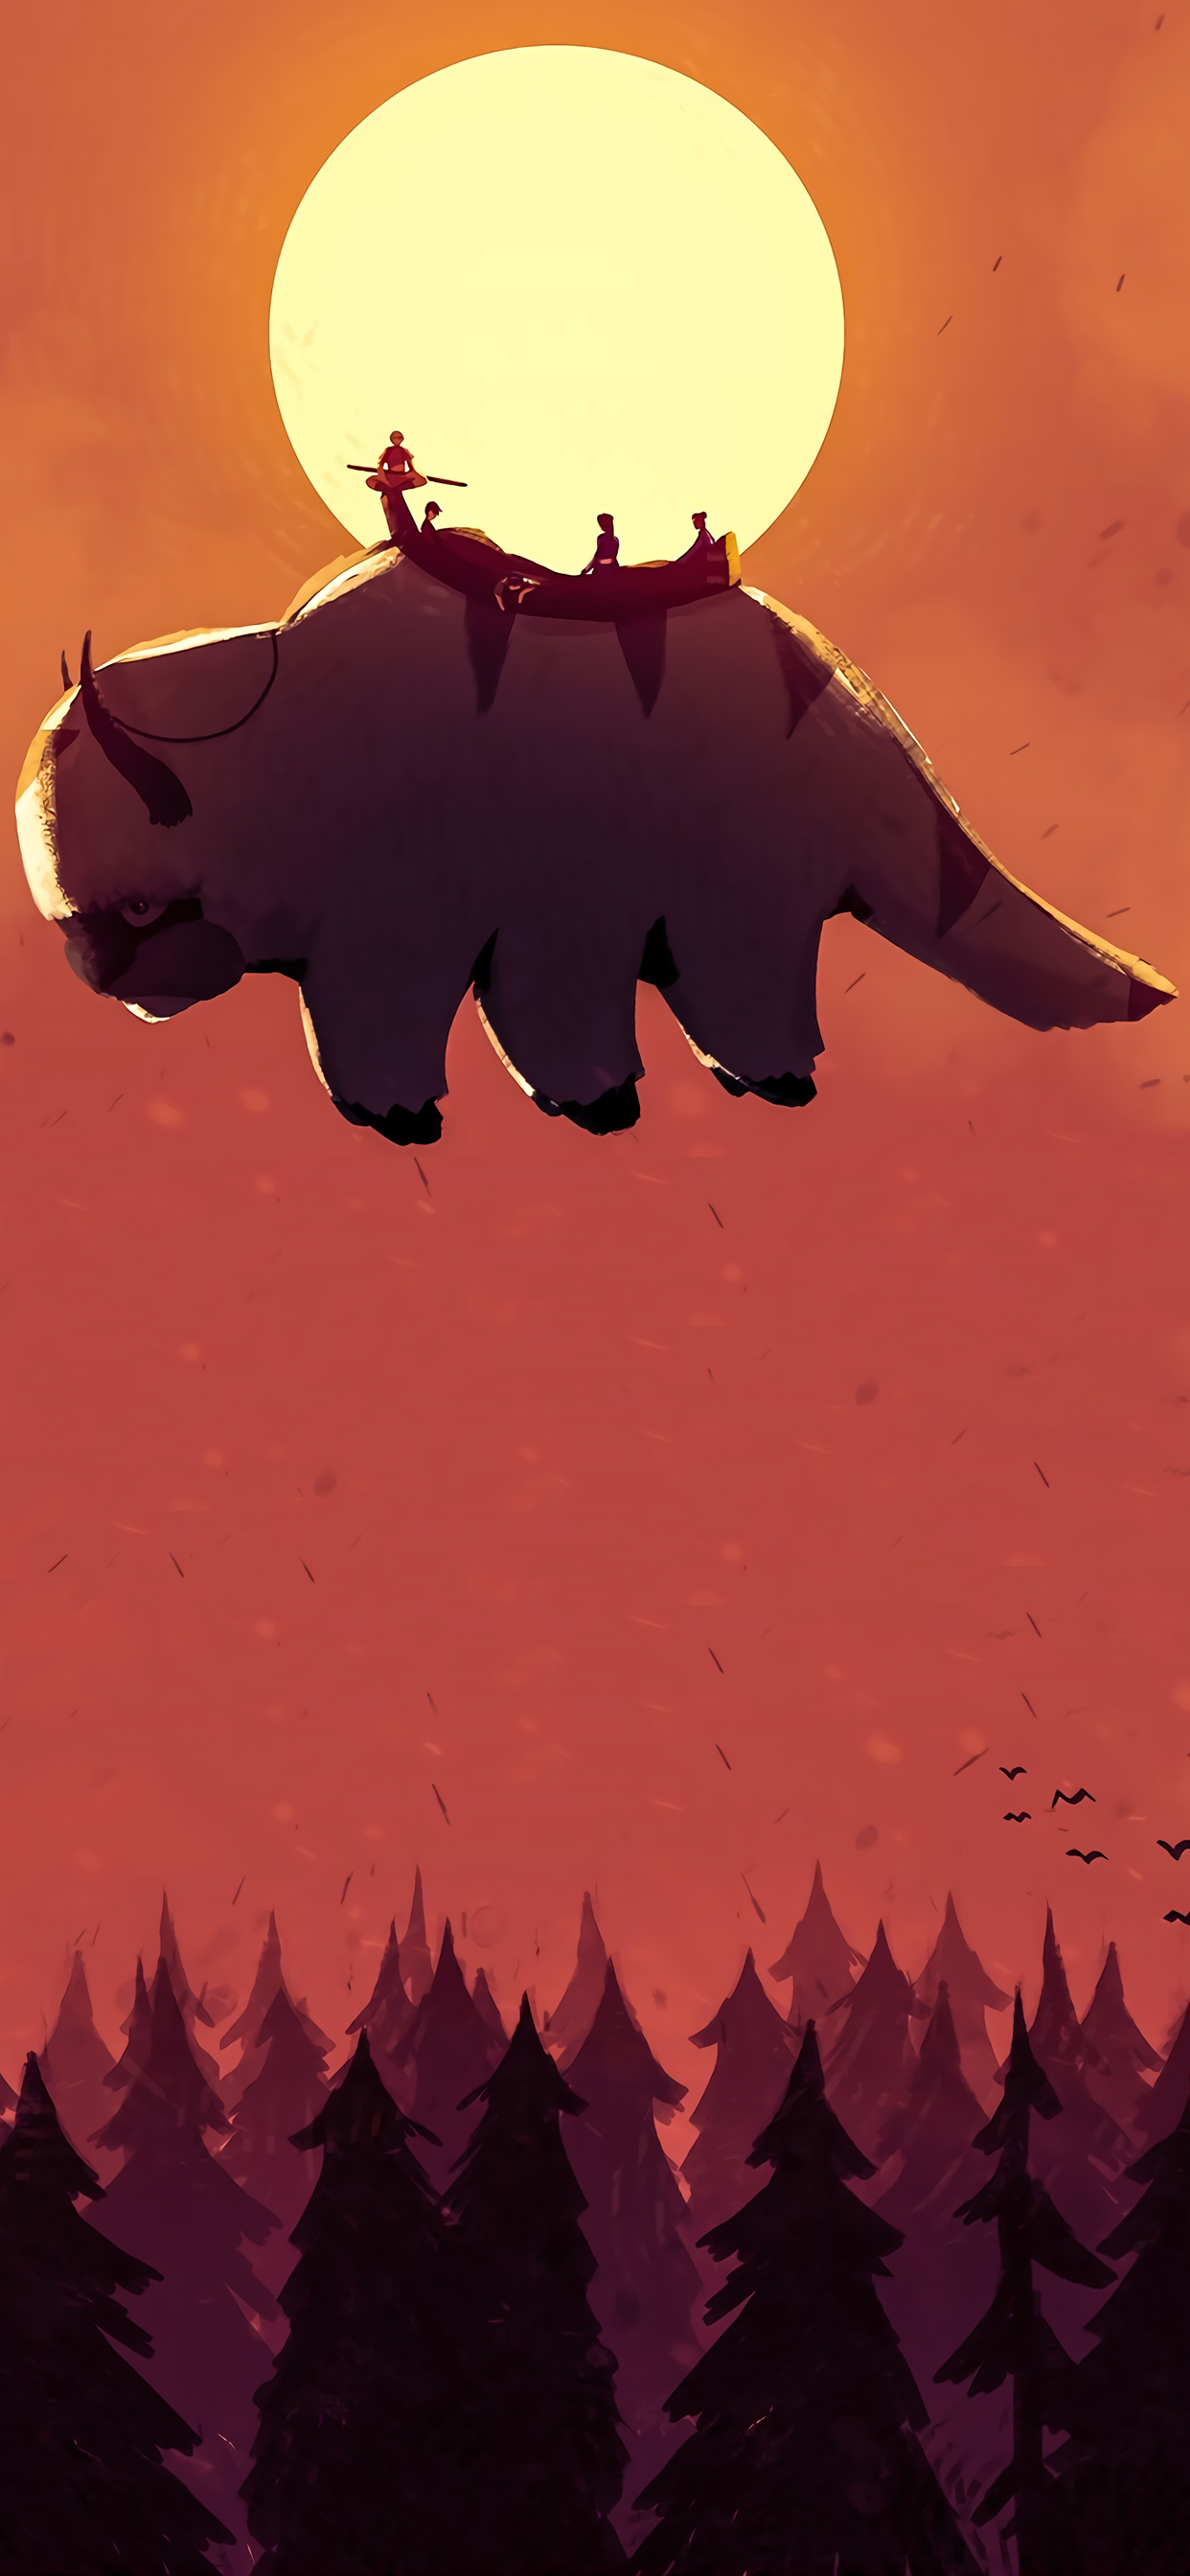 The Last Airbender Avatar The Last Airbender Phone Background